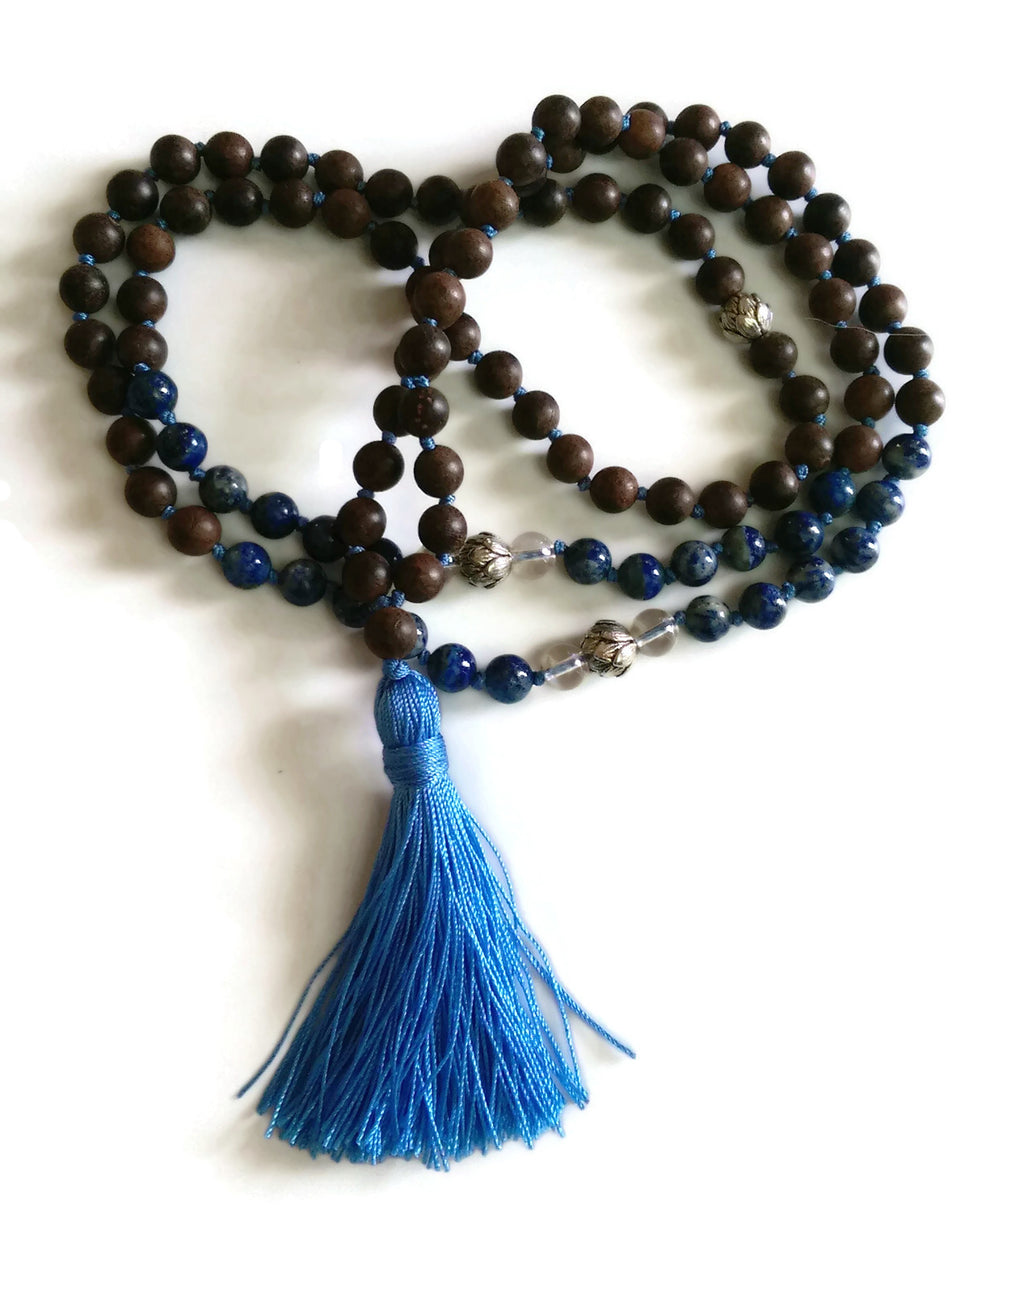 Fresh Start Chakra Collection 8mm Lapis Lazuli Crystal Brown Agarwood Traditional Knotted 108 Meditation Mala Necklace